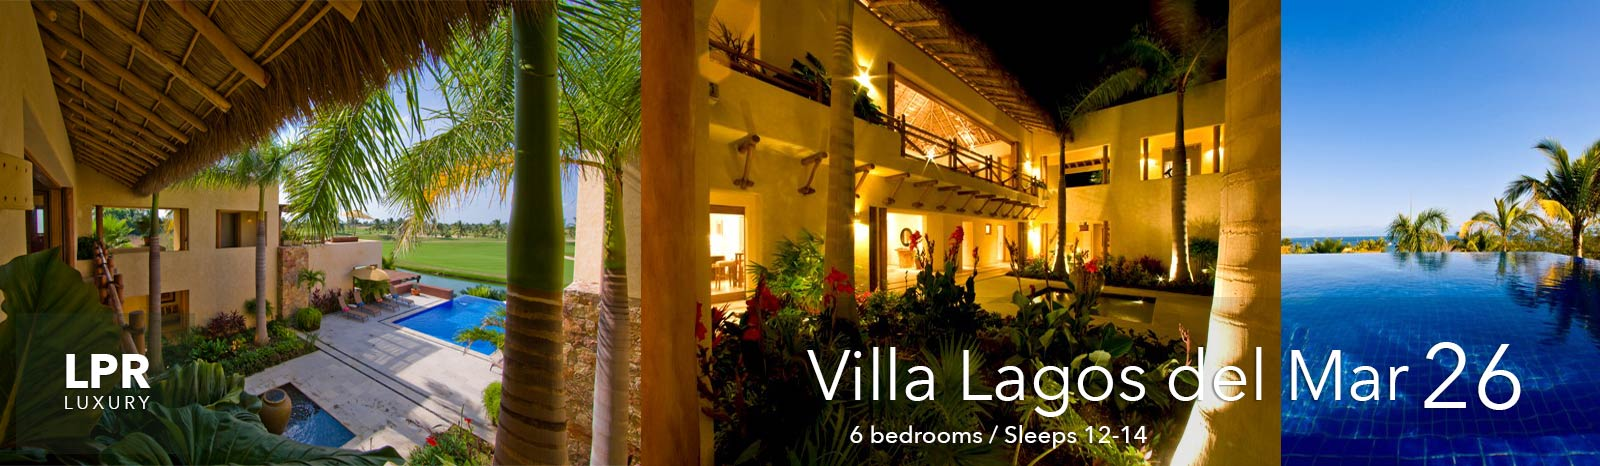 Villa Lagos del Mar 26 - Punta Mita Resort - Mexico Luxury Vacation Rentals and Resort Real Estate